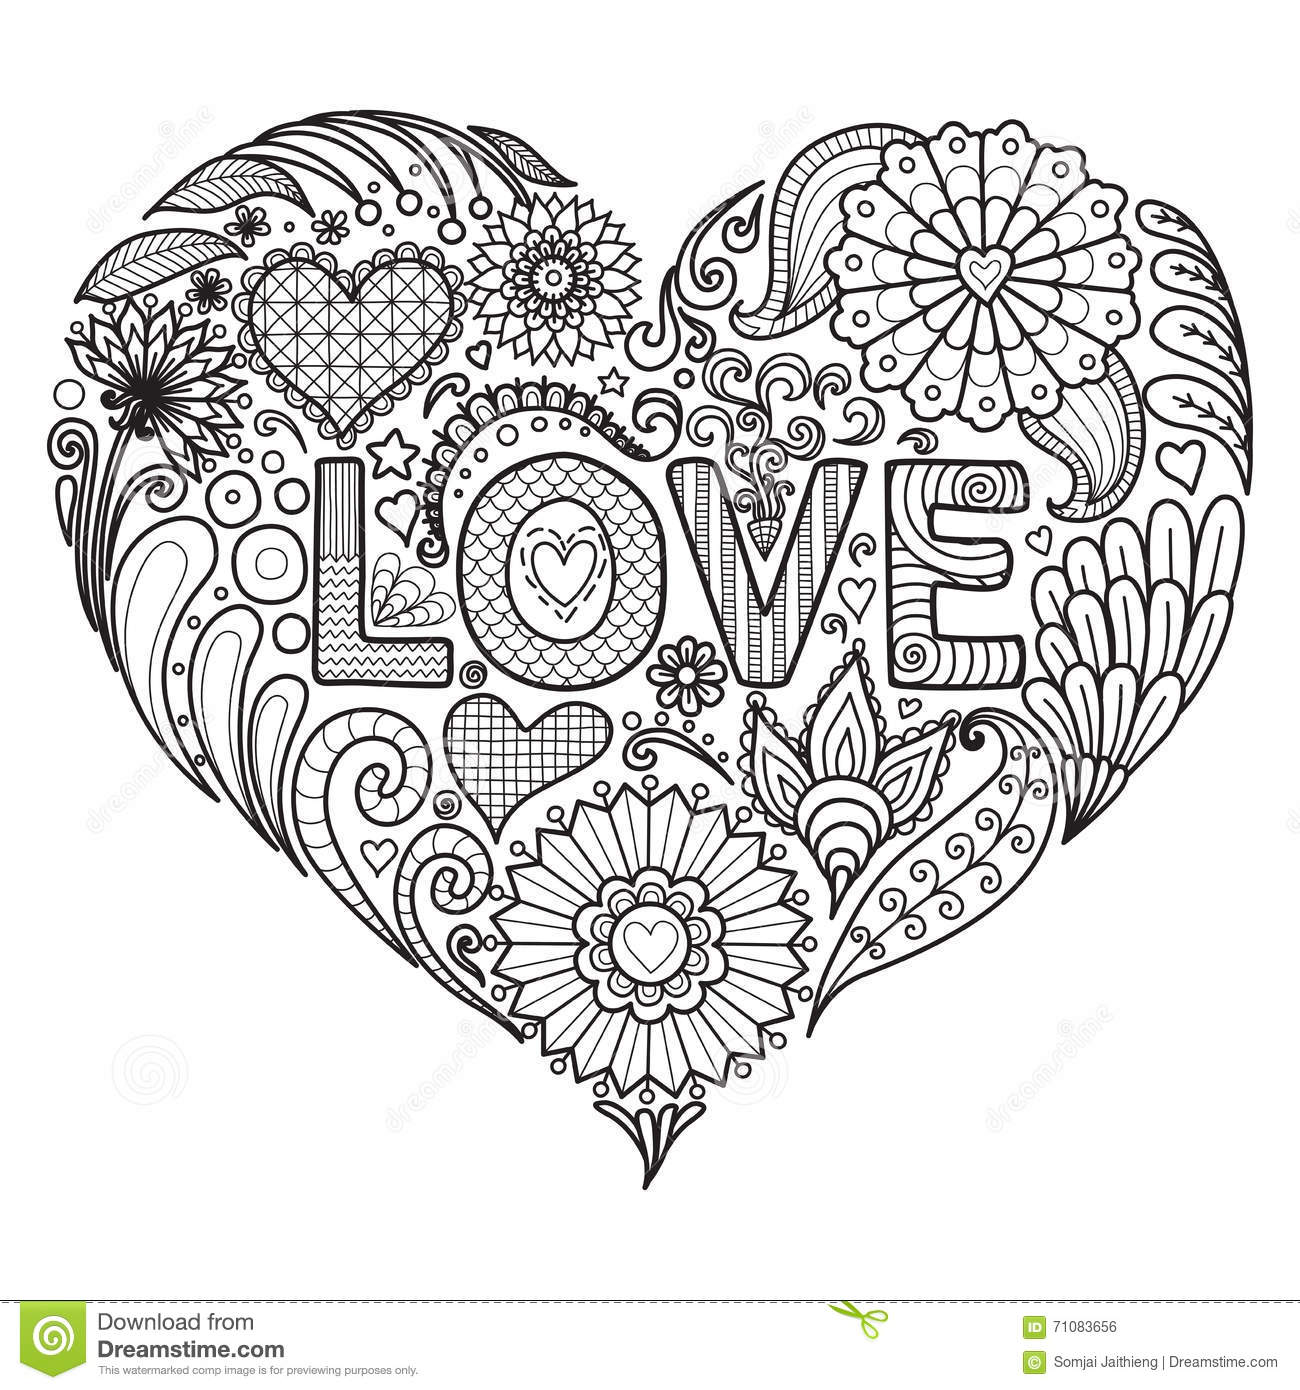 It's just a photo of Witty Adult Coloring Pages Hearts